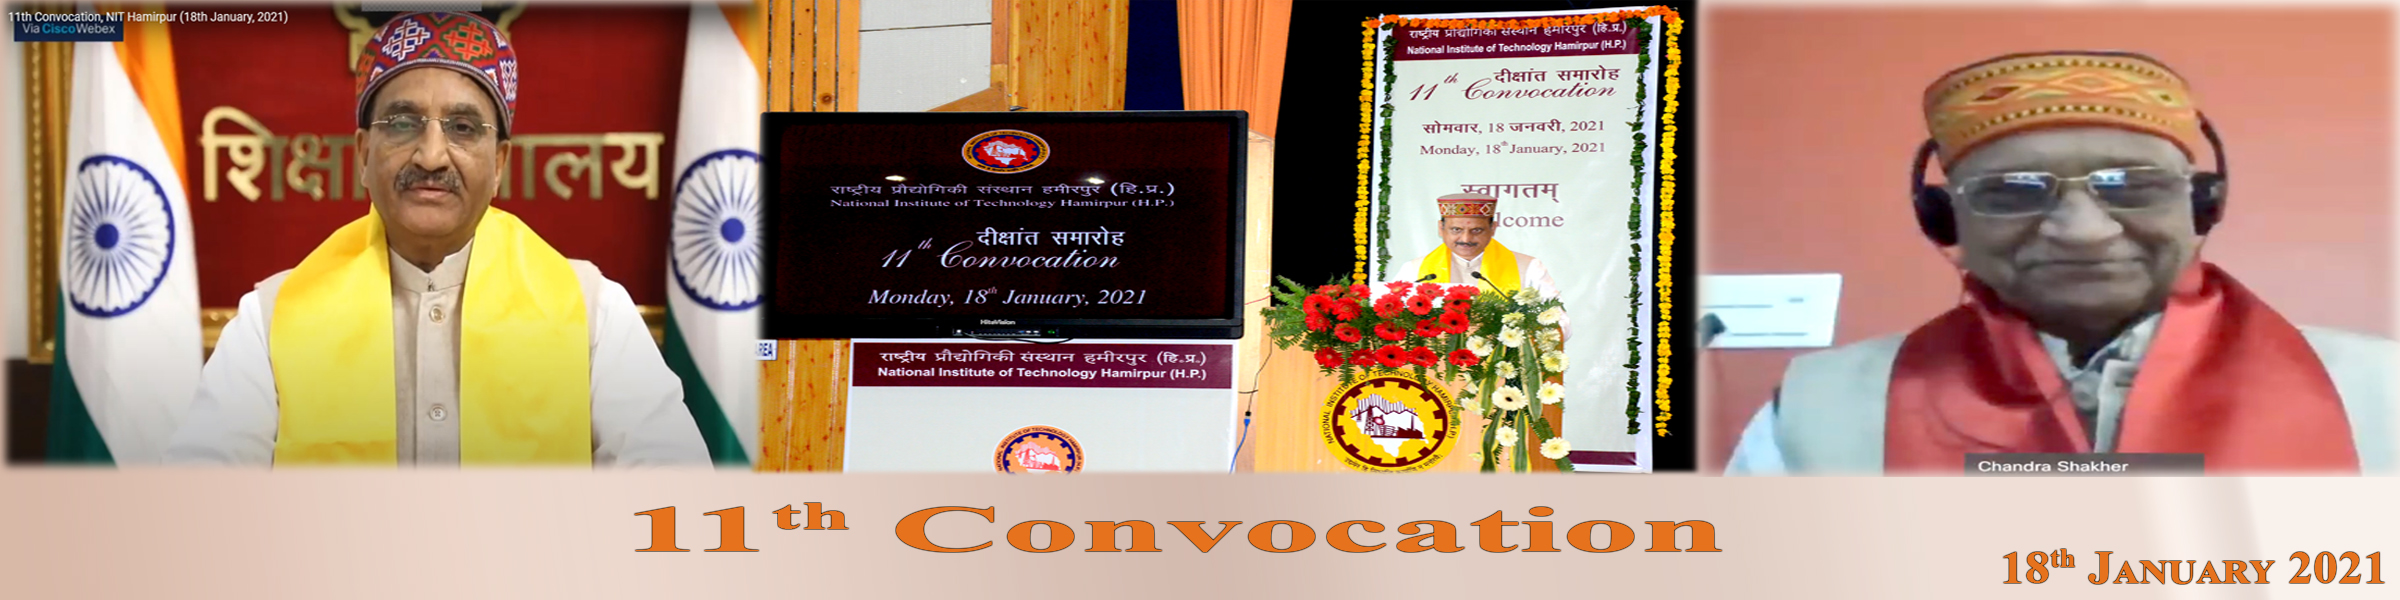 11th Convocation NIT Hamirpur 1